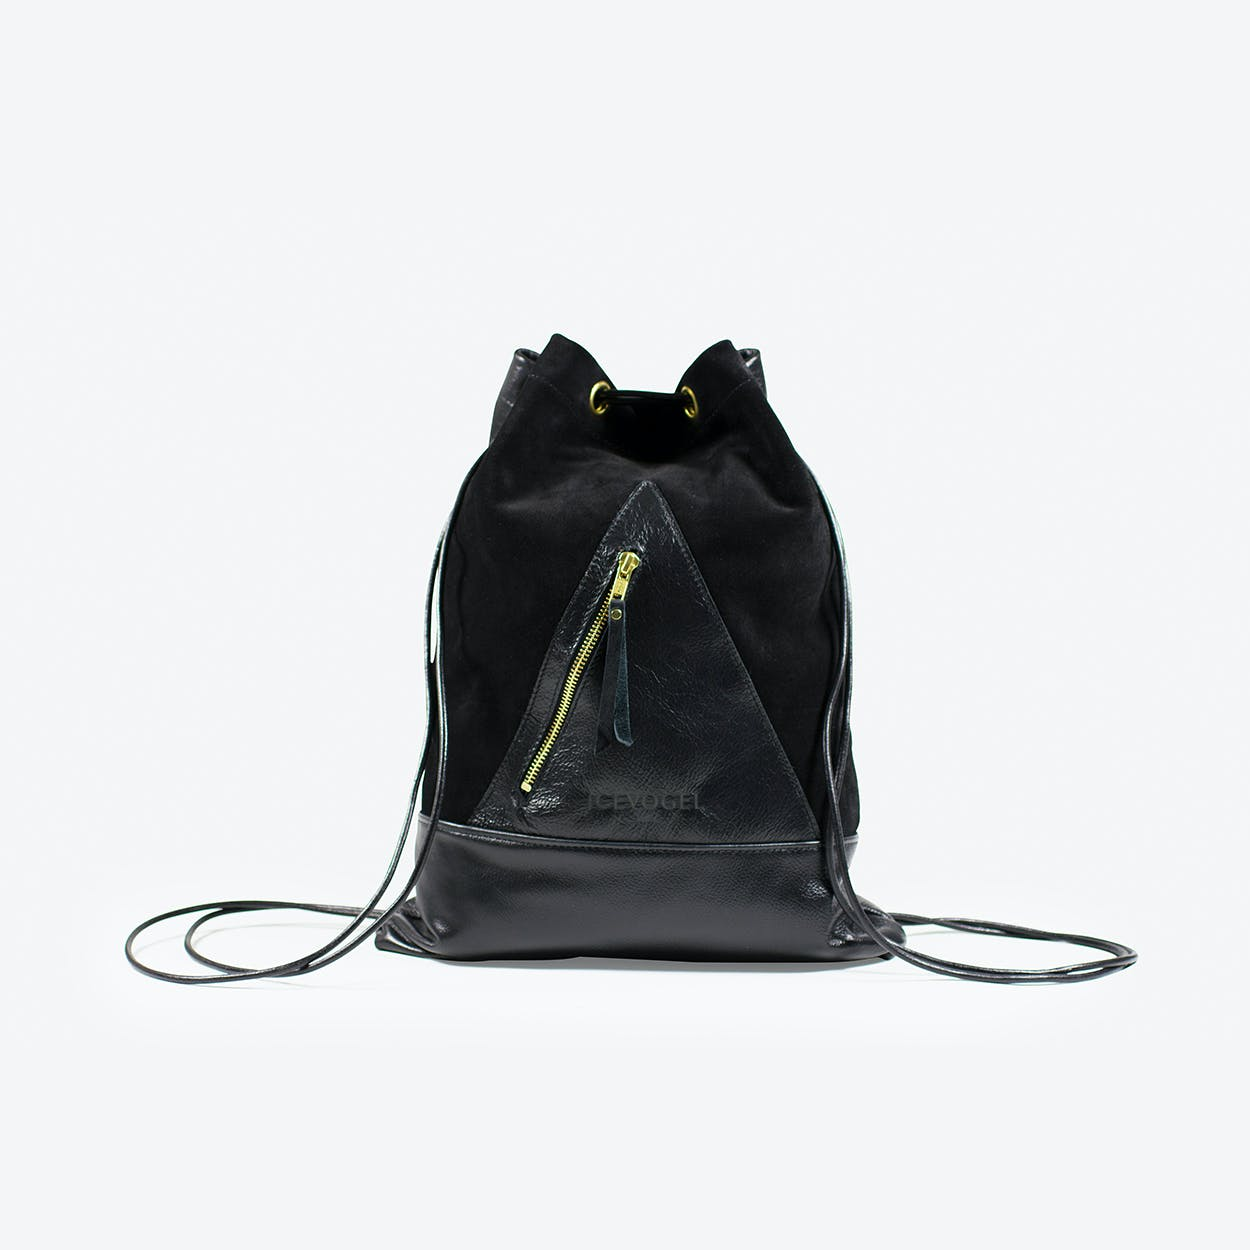 Backpack Saatkrähe in Black Cow Leather, Suede and Gold Fittings